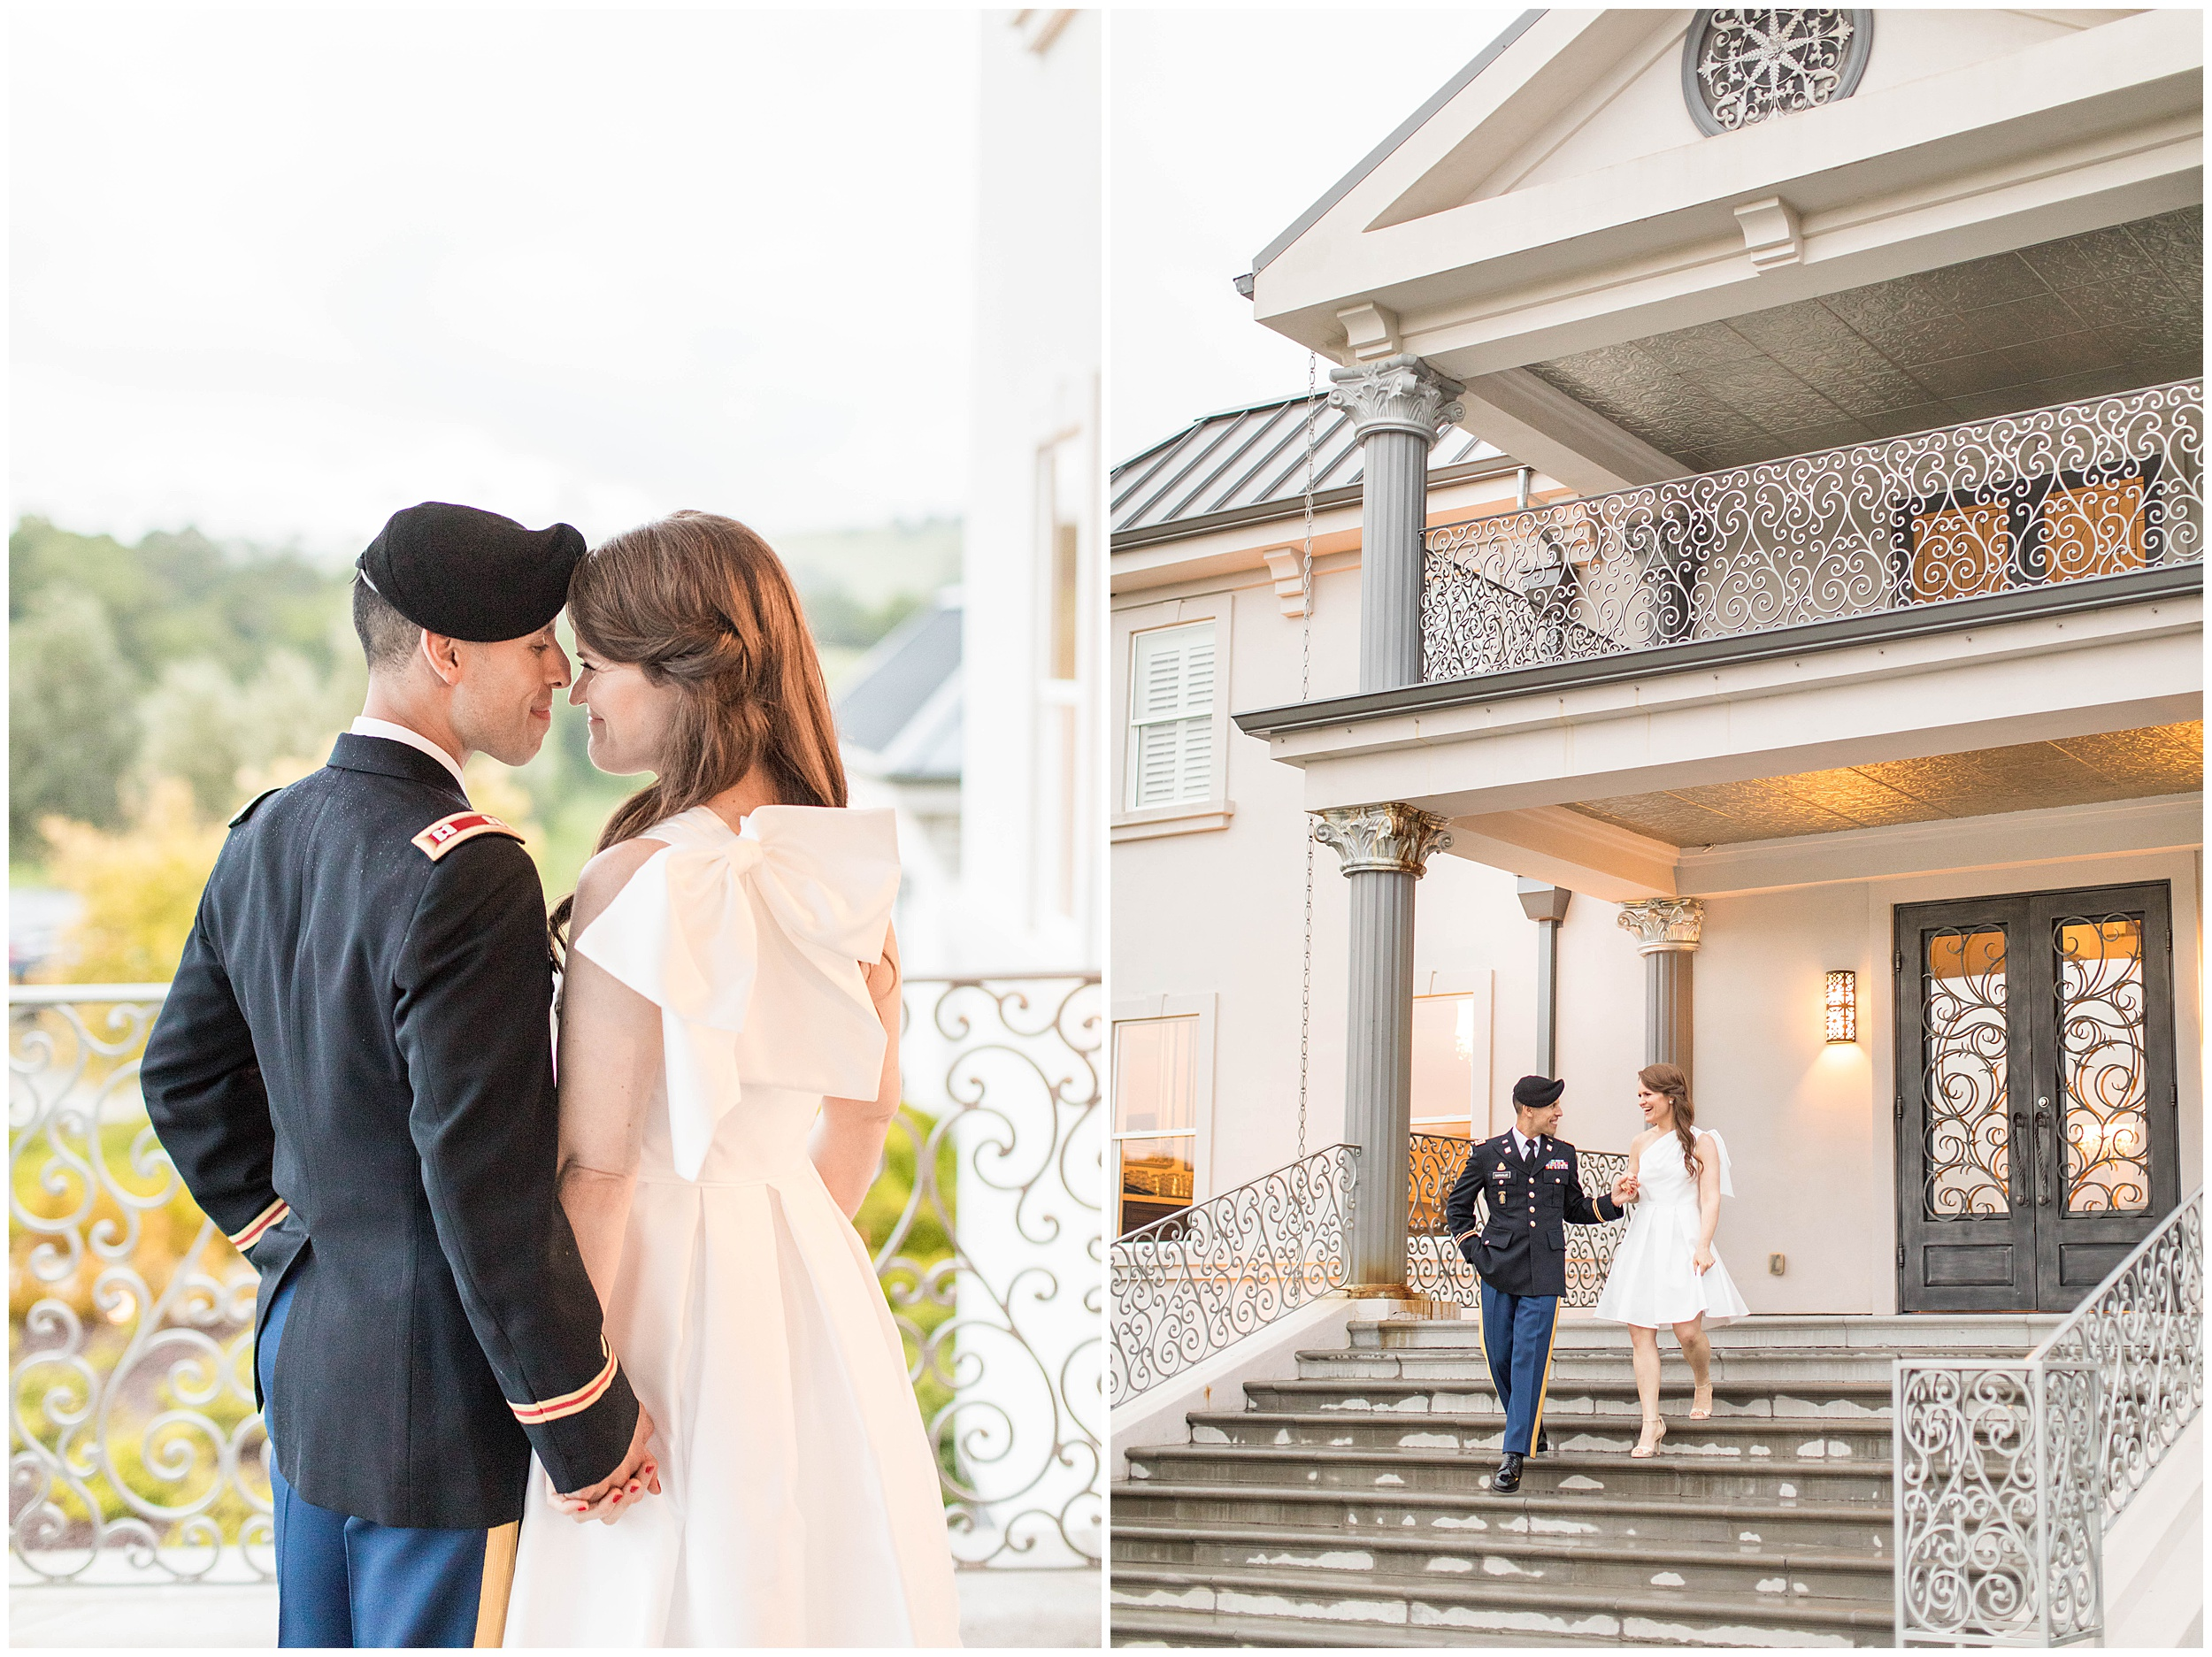 Willow Heights Mansion-San Jose Wedding Photographer-Engagement Session-Angela Sue Photography_0028.jpg